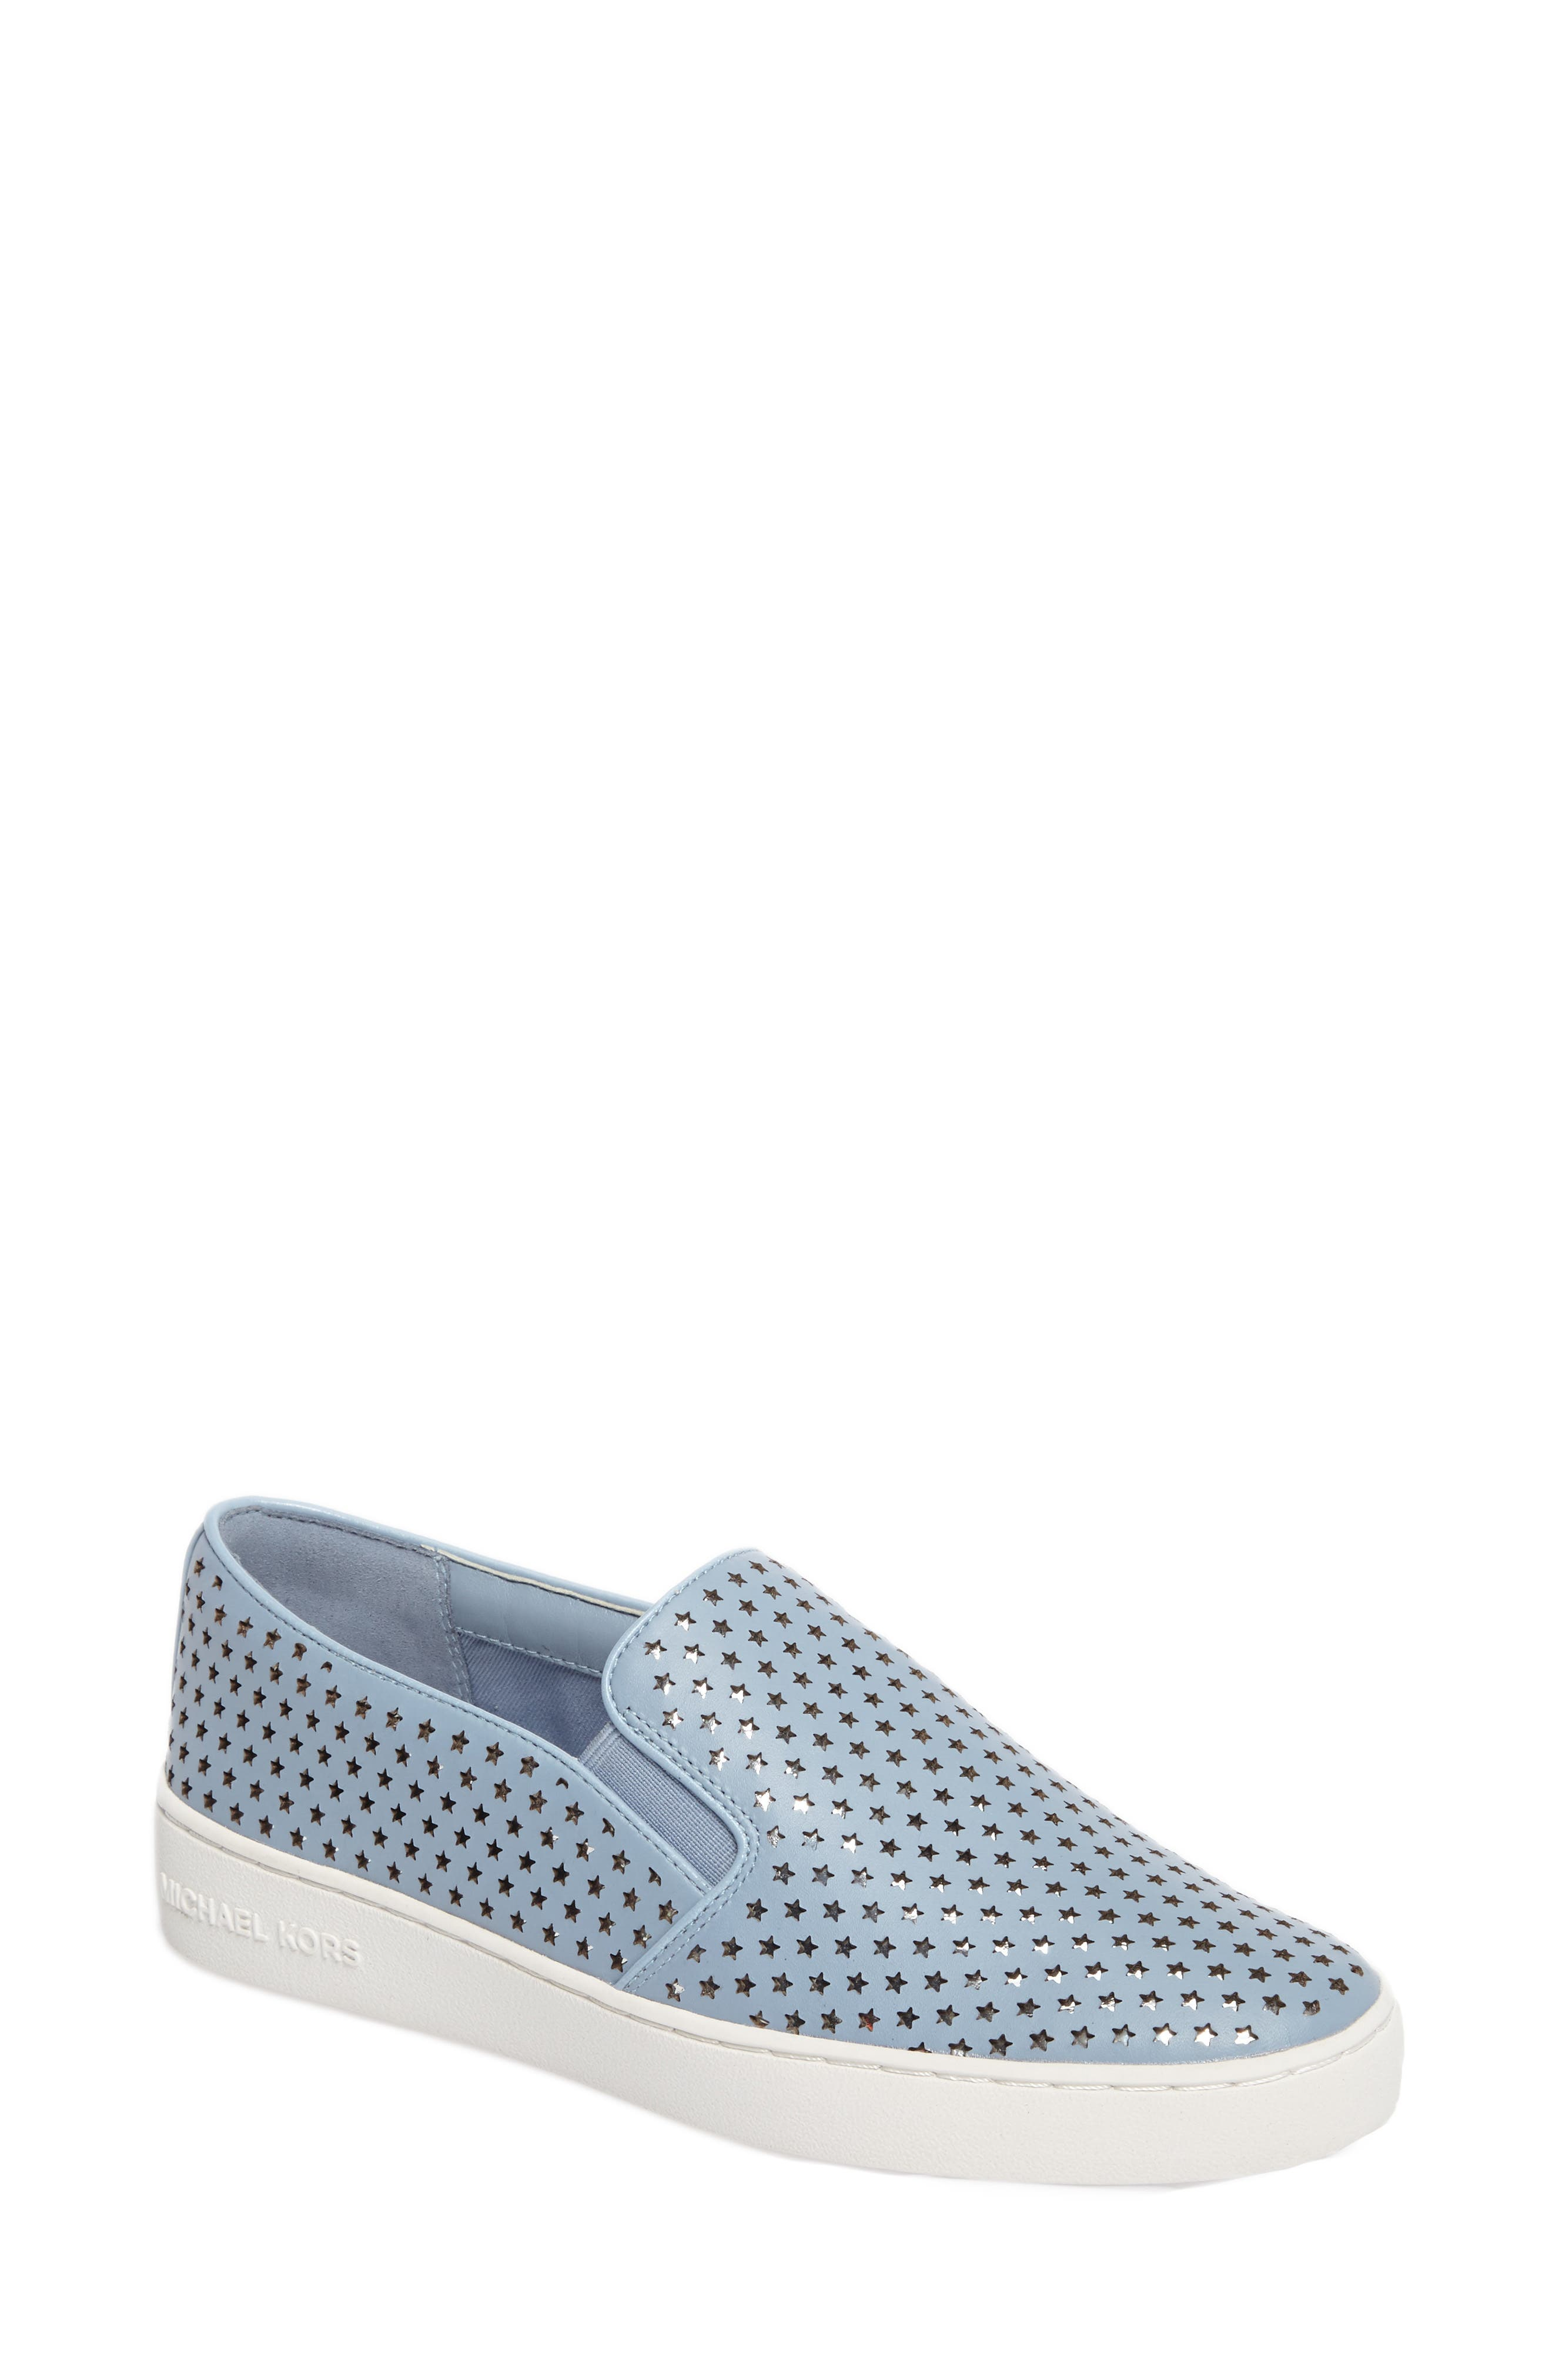 Keaton Slip-On Sneaker,                         Main,                         color, Pale Blue Perforated Star